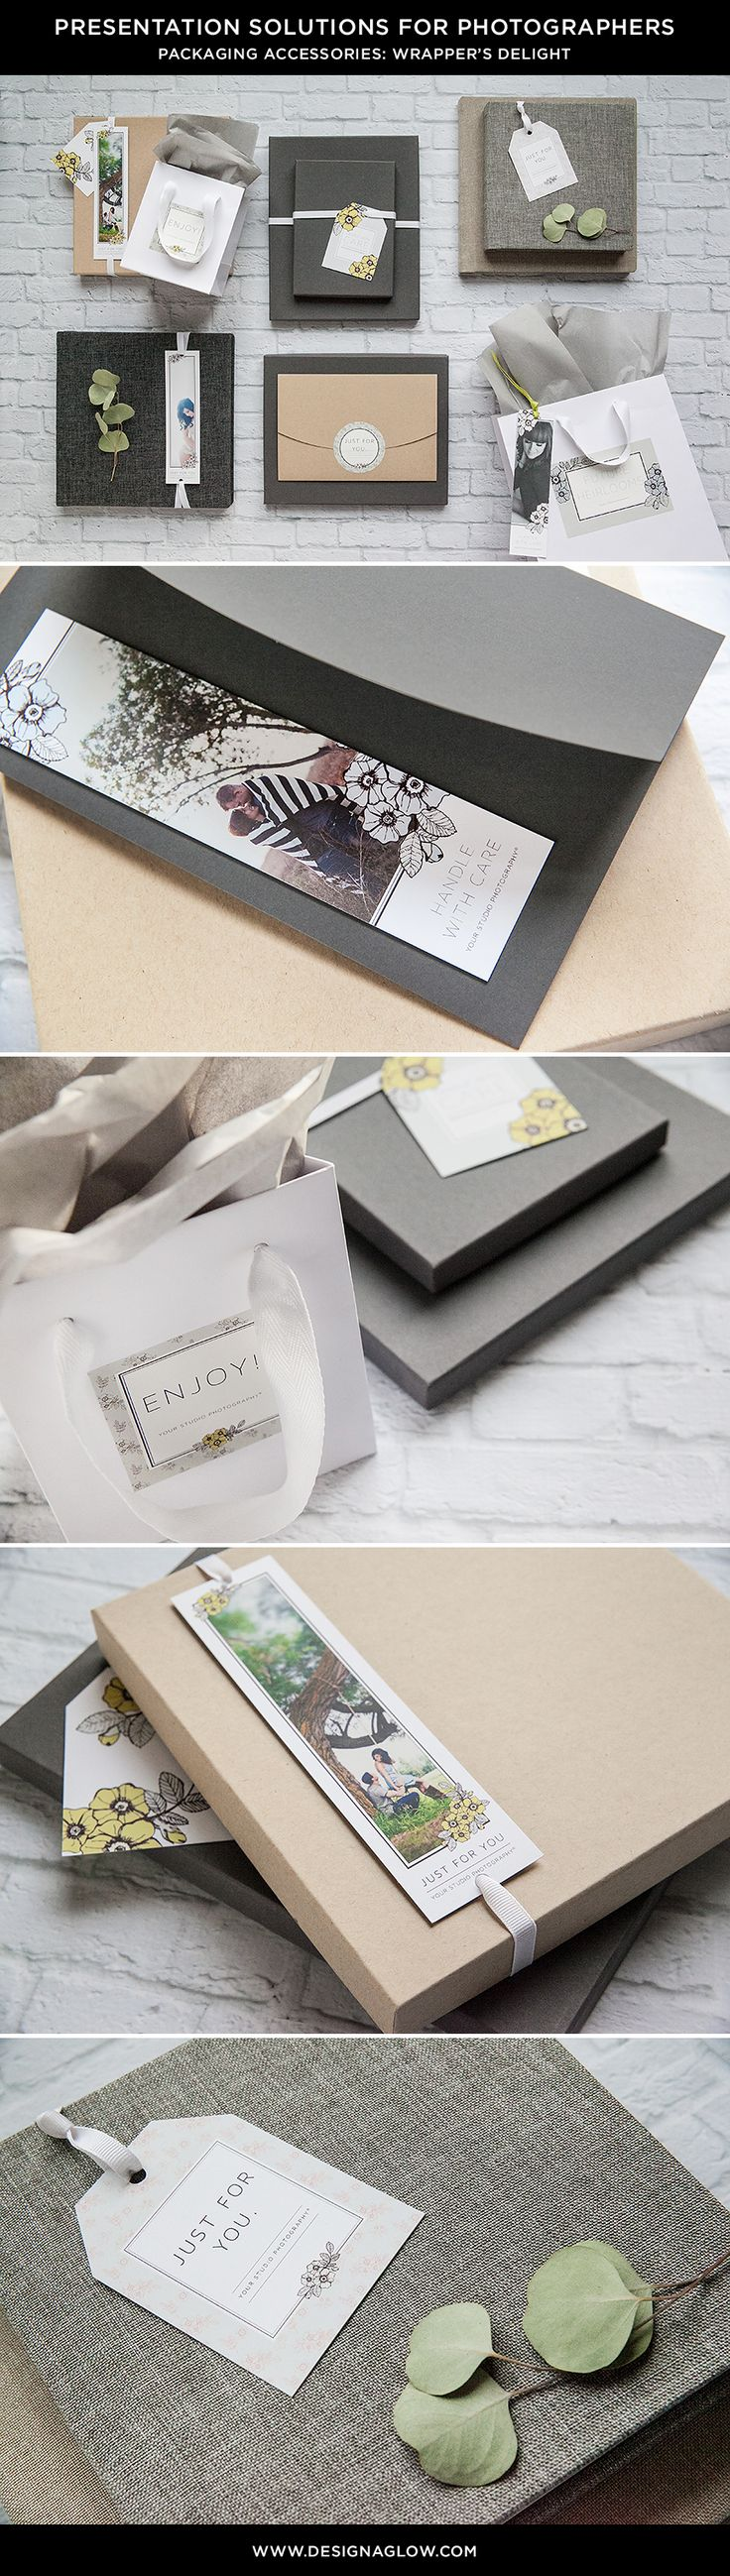 Leave a great impression with gorgeous packaging accessories! #designaglow